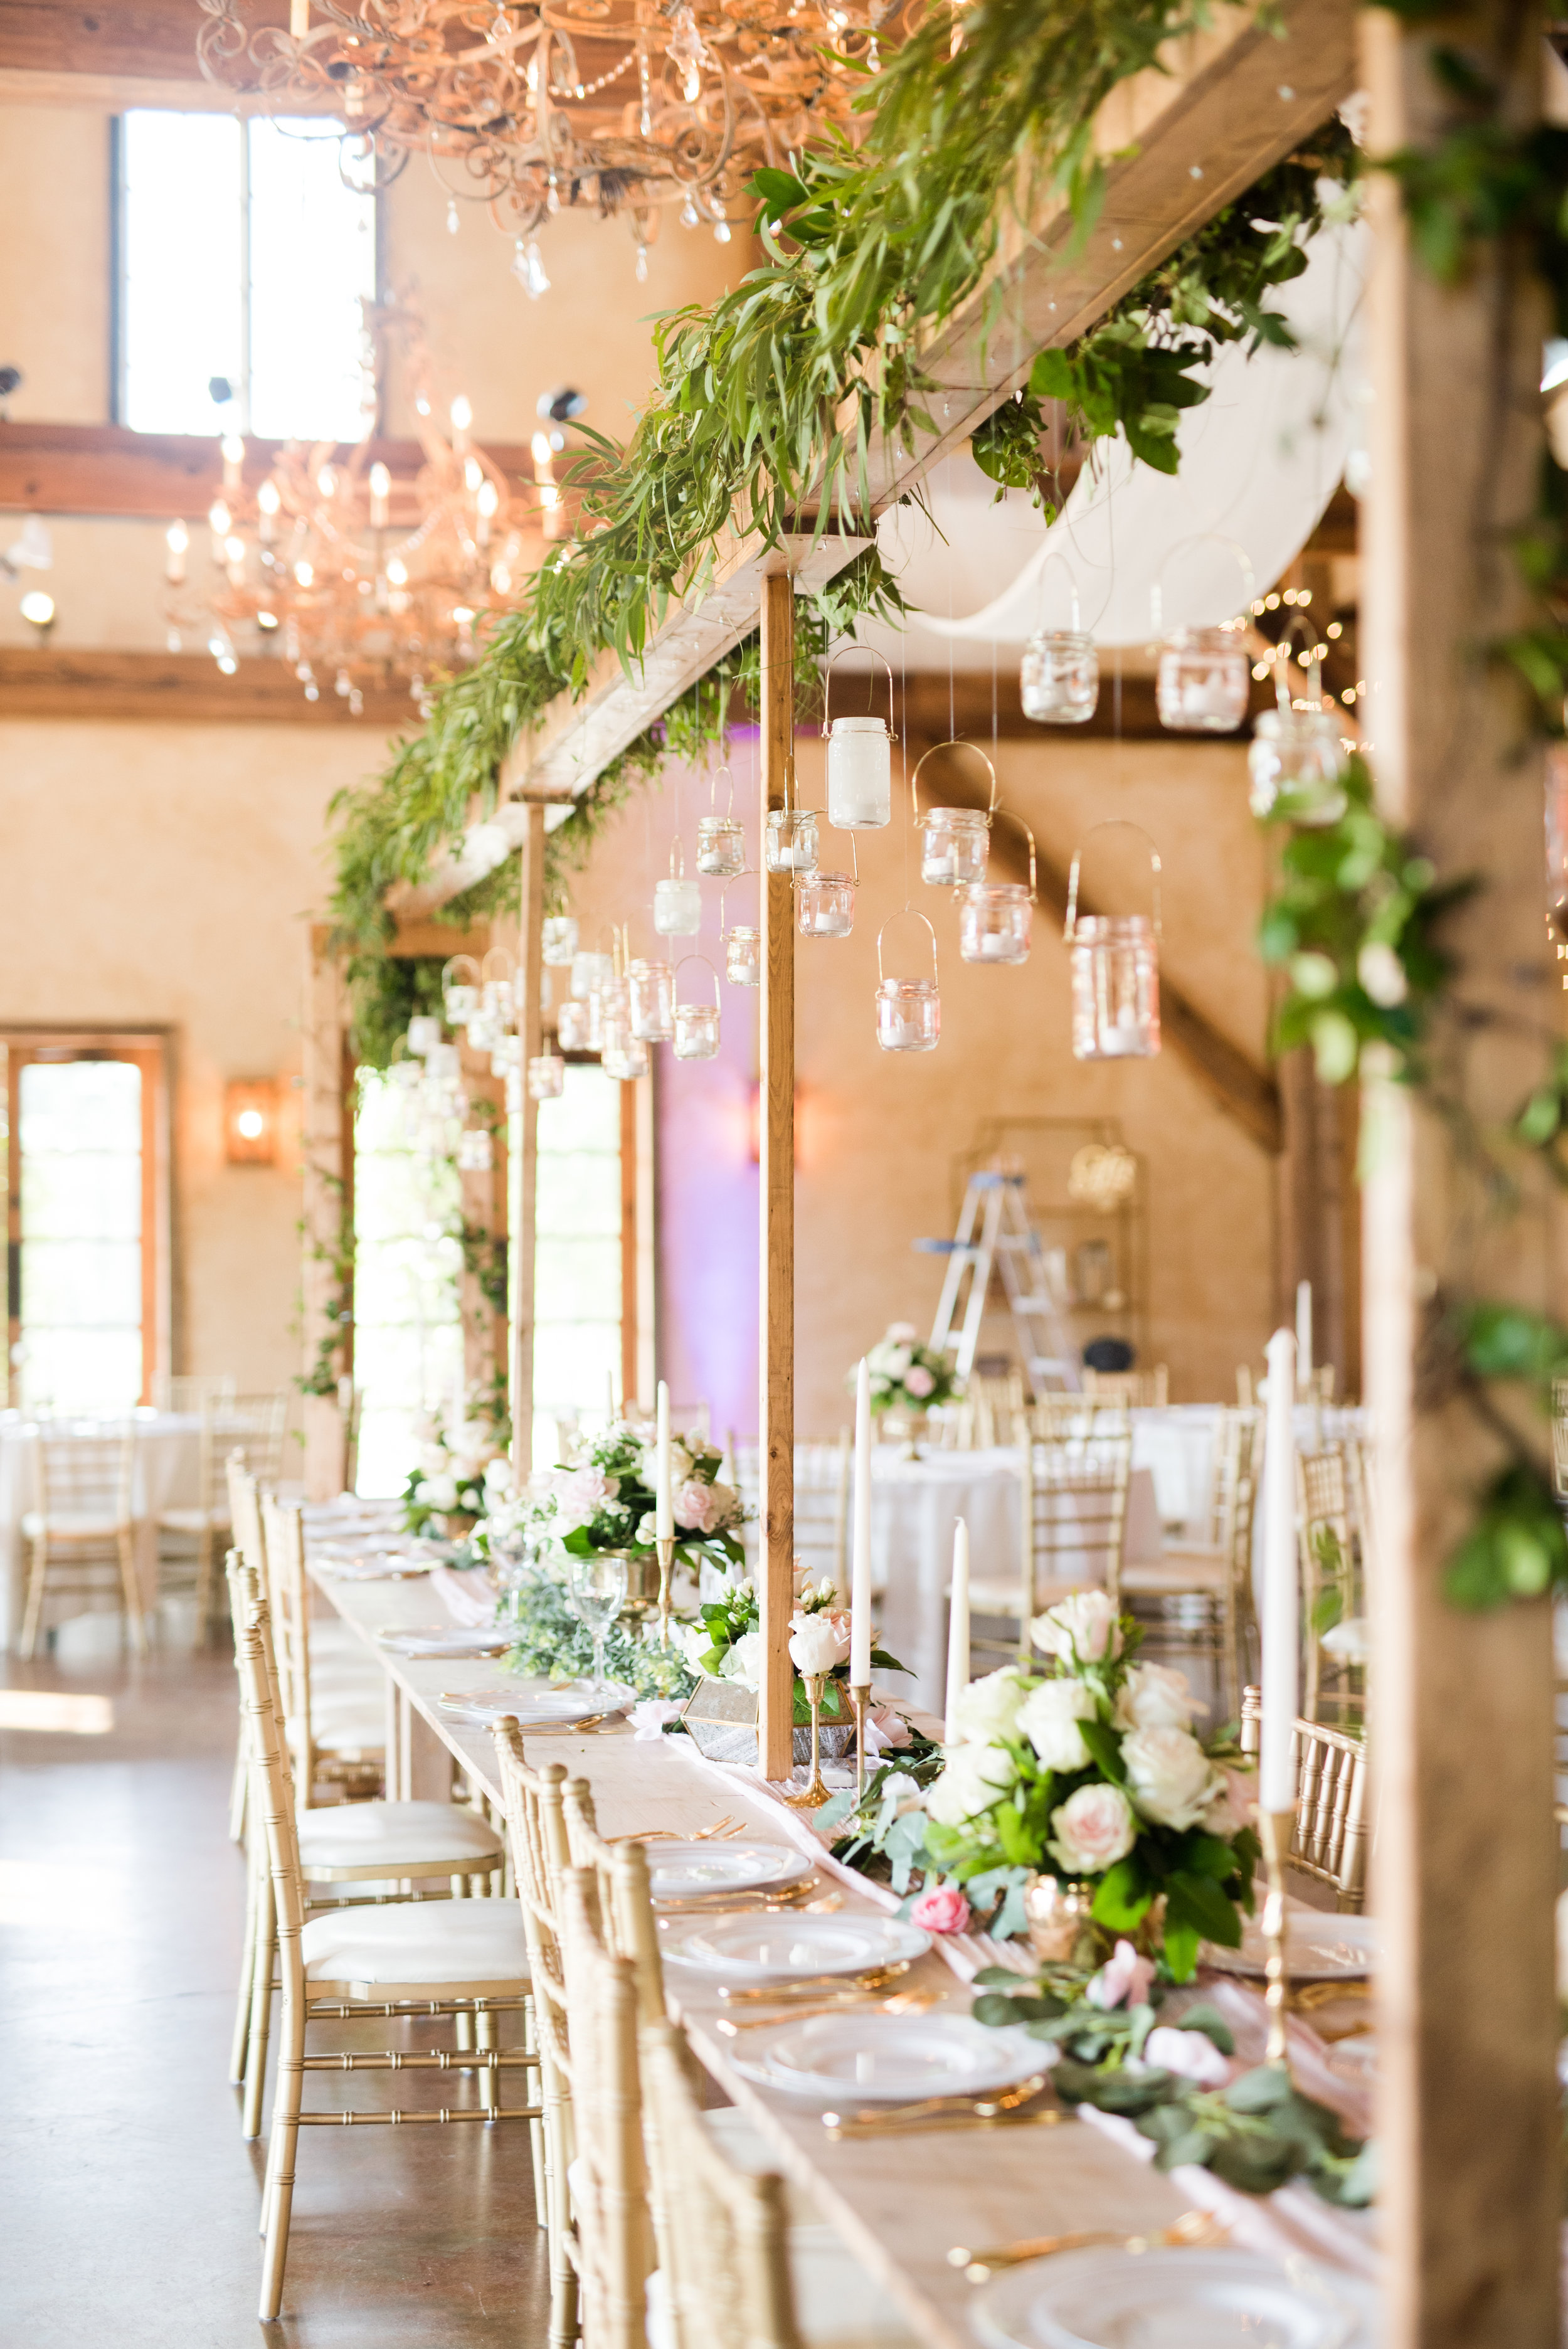 The Barn at Bridlewood wedding in Hattiesburg, Mississippi (MS) in June | Wedding Venue details, floral arrangements, bridal party seating, bridal party table